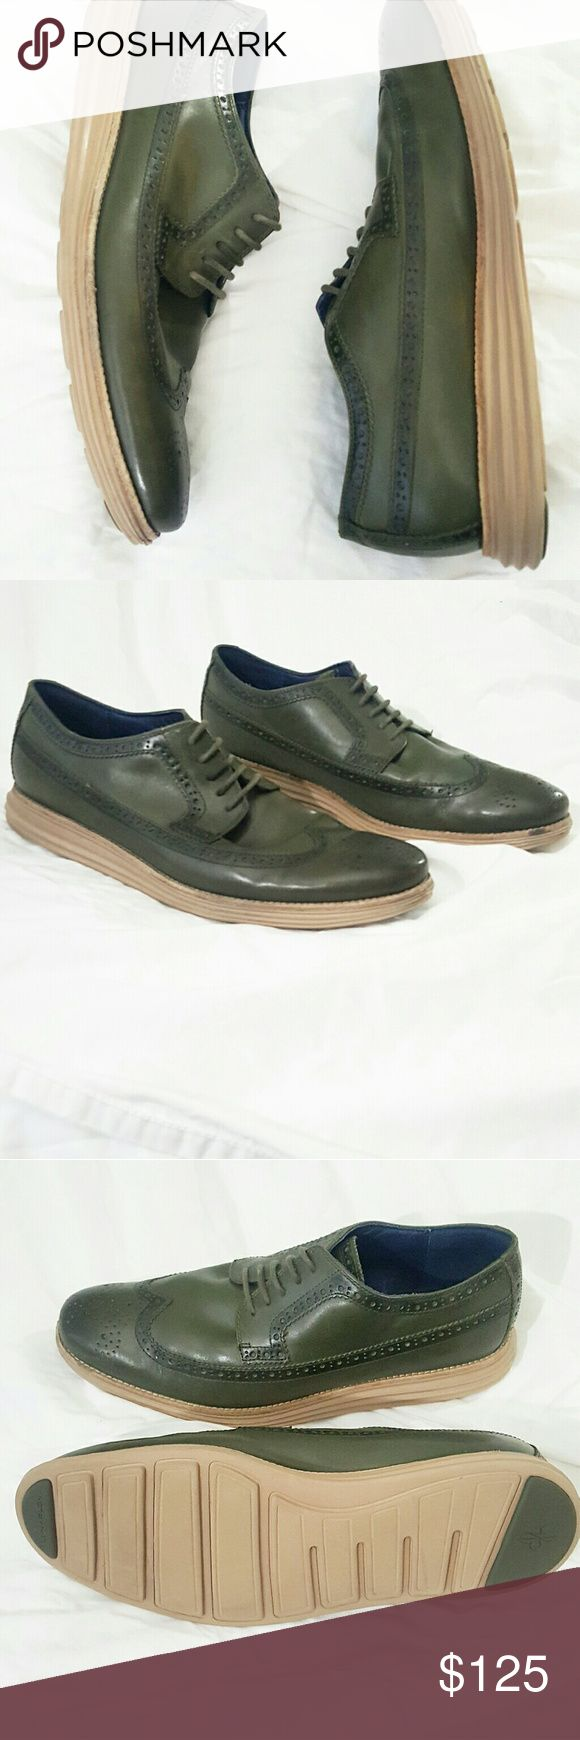 1000 ideas about most comfortable dress shoes on